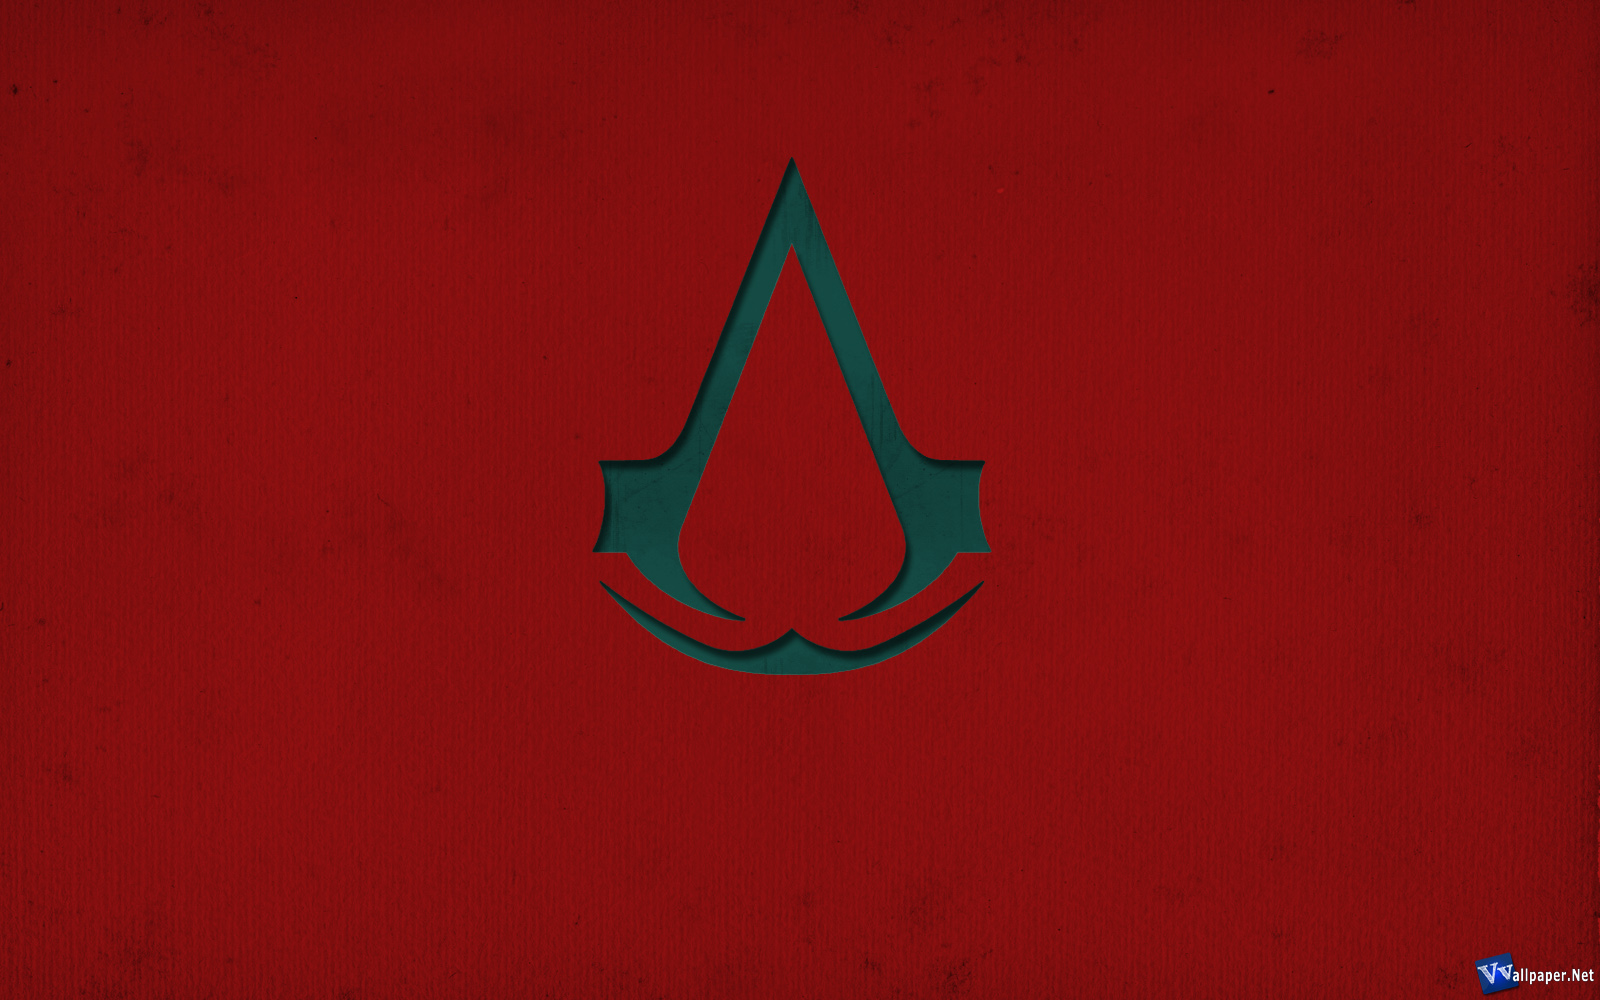 Central Wallpaper Assassins Creed Logo HD Wallpapers 1600x1000